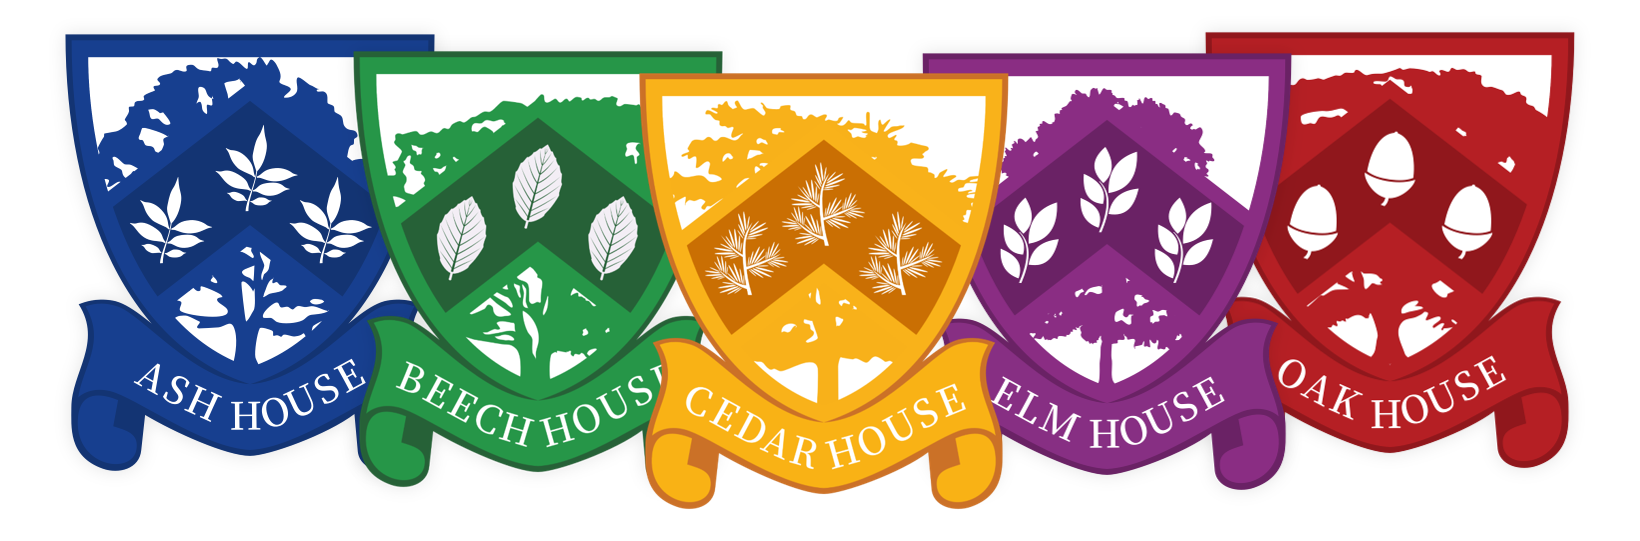 Five house crests